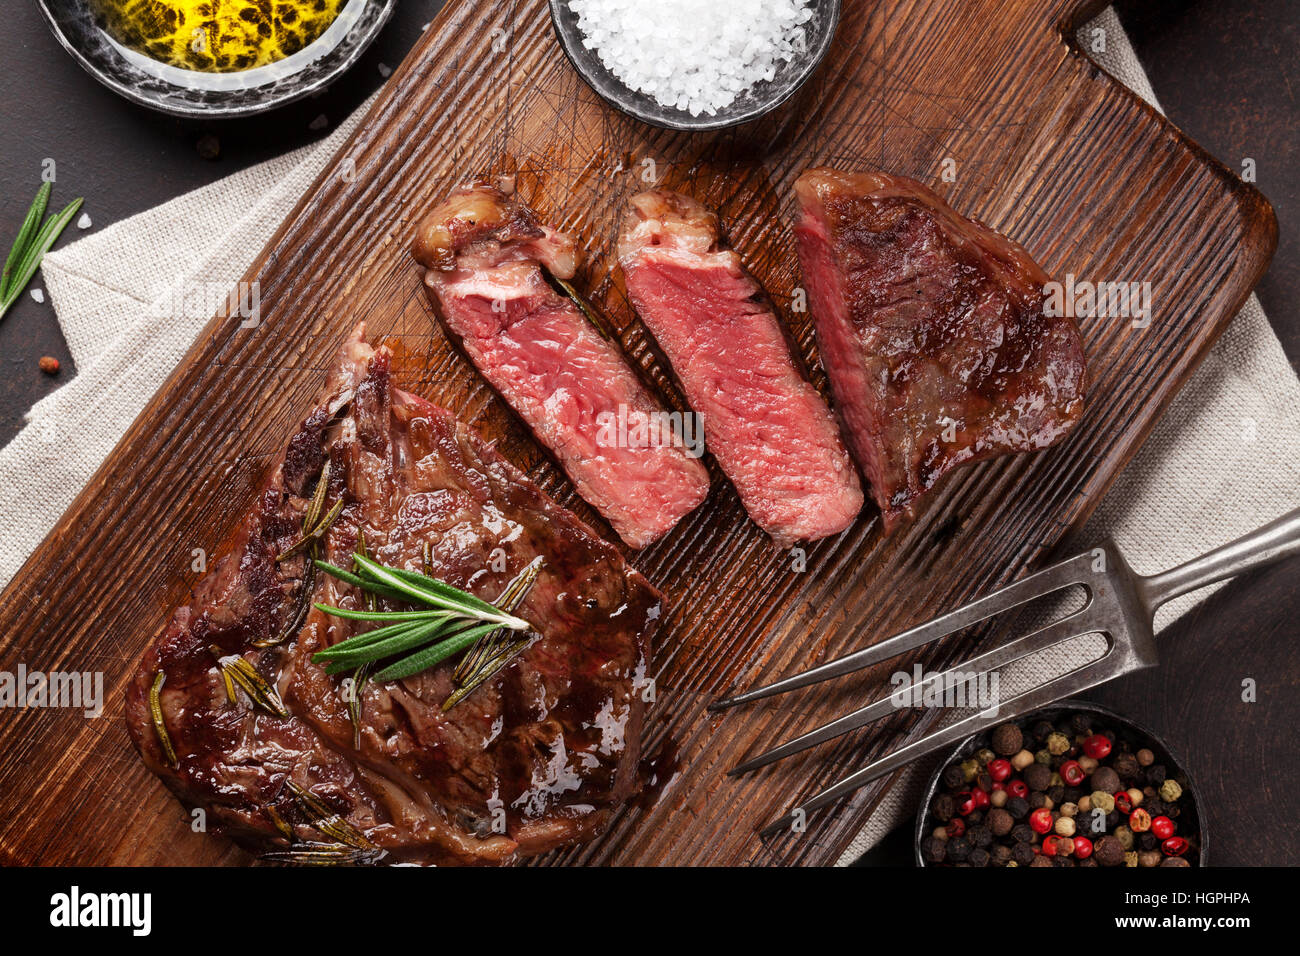 Grilled ribeye beef steak, herbs and spices. Top view Stock Photo